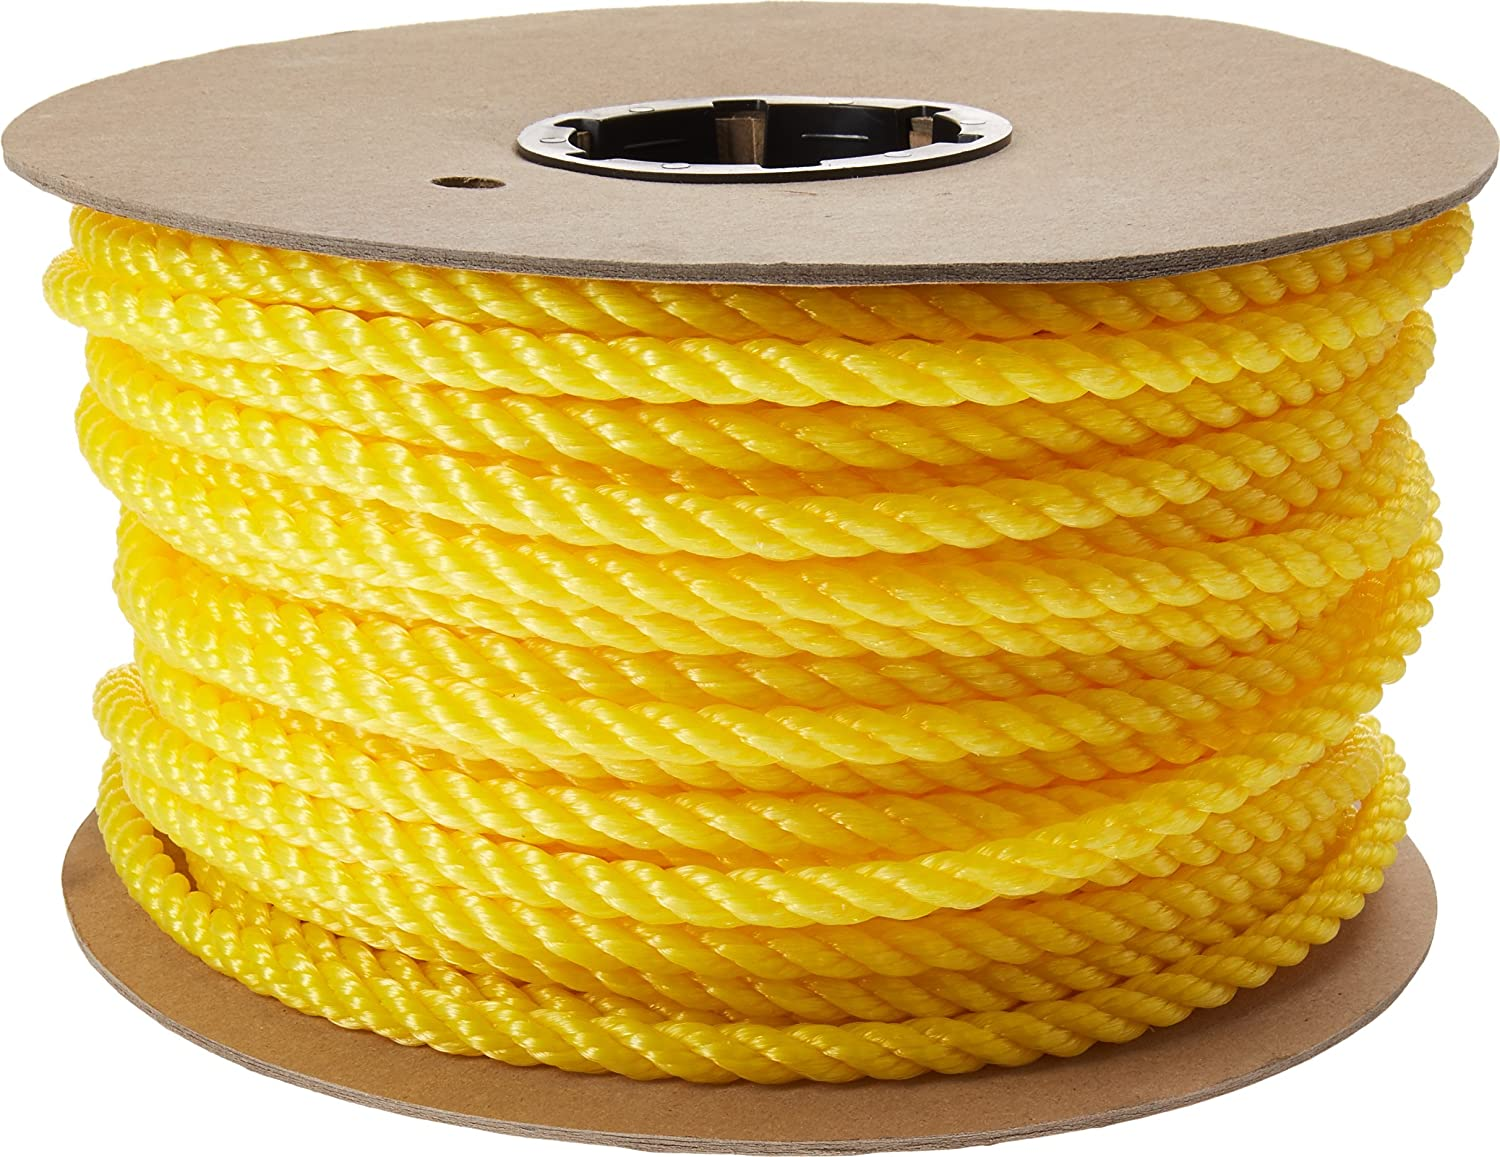 CORDAGE SOURCE Twisted Poly Rope, 3 8-Inch by 225-Feet, Yellow